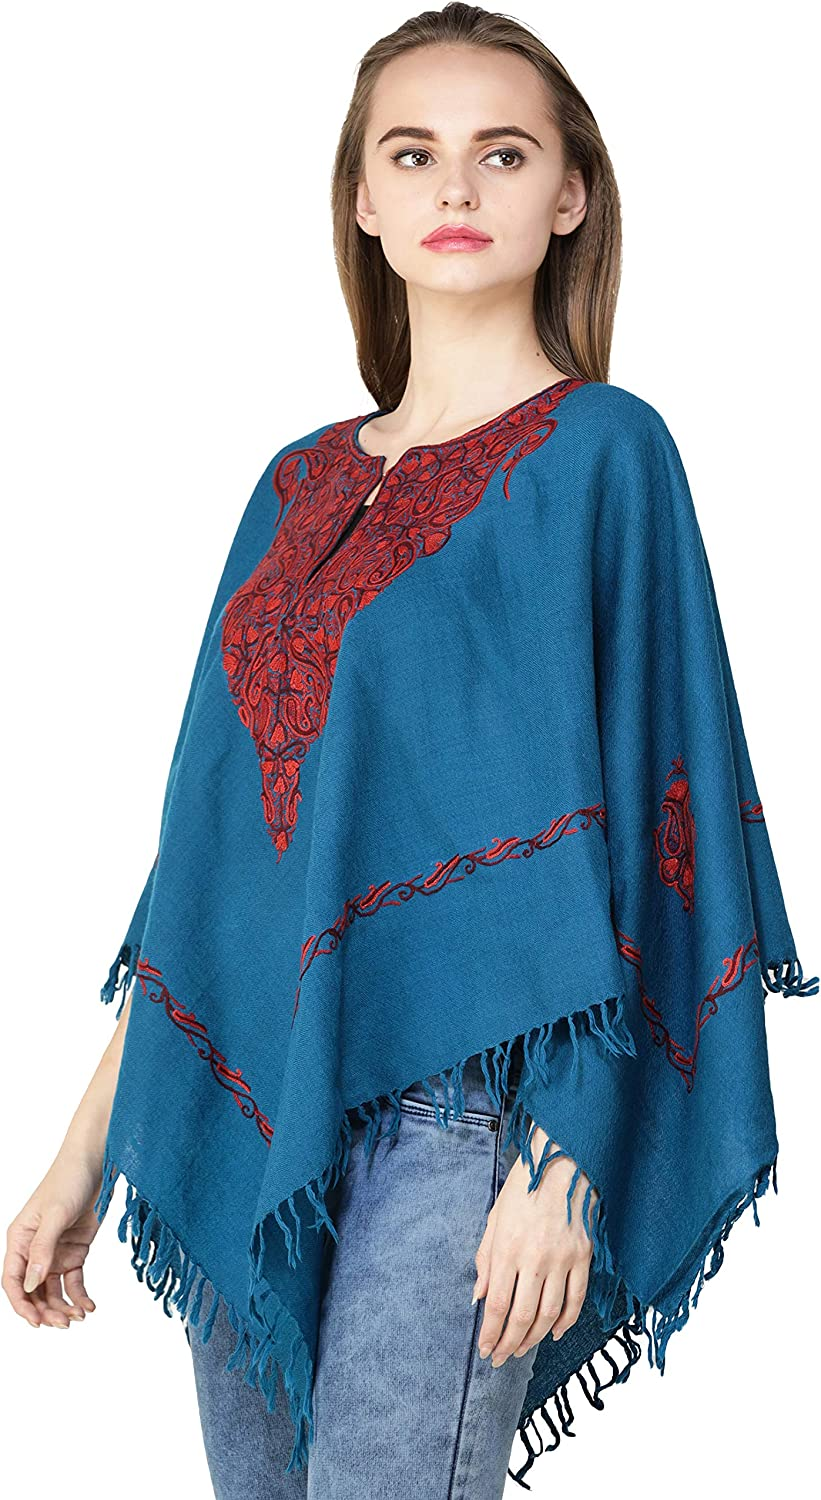 Exotic India Poncho from Kashmir with Ari Hand-Embroidered Paisleys on Neck